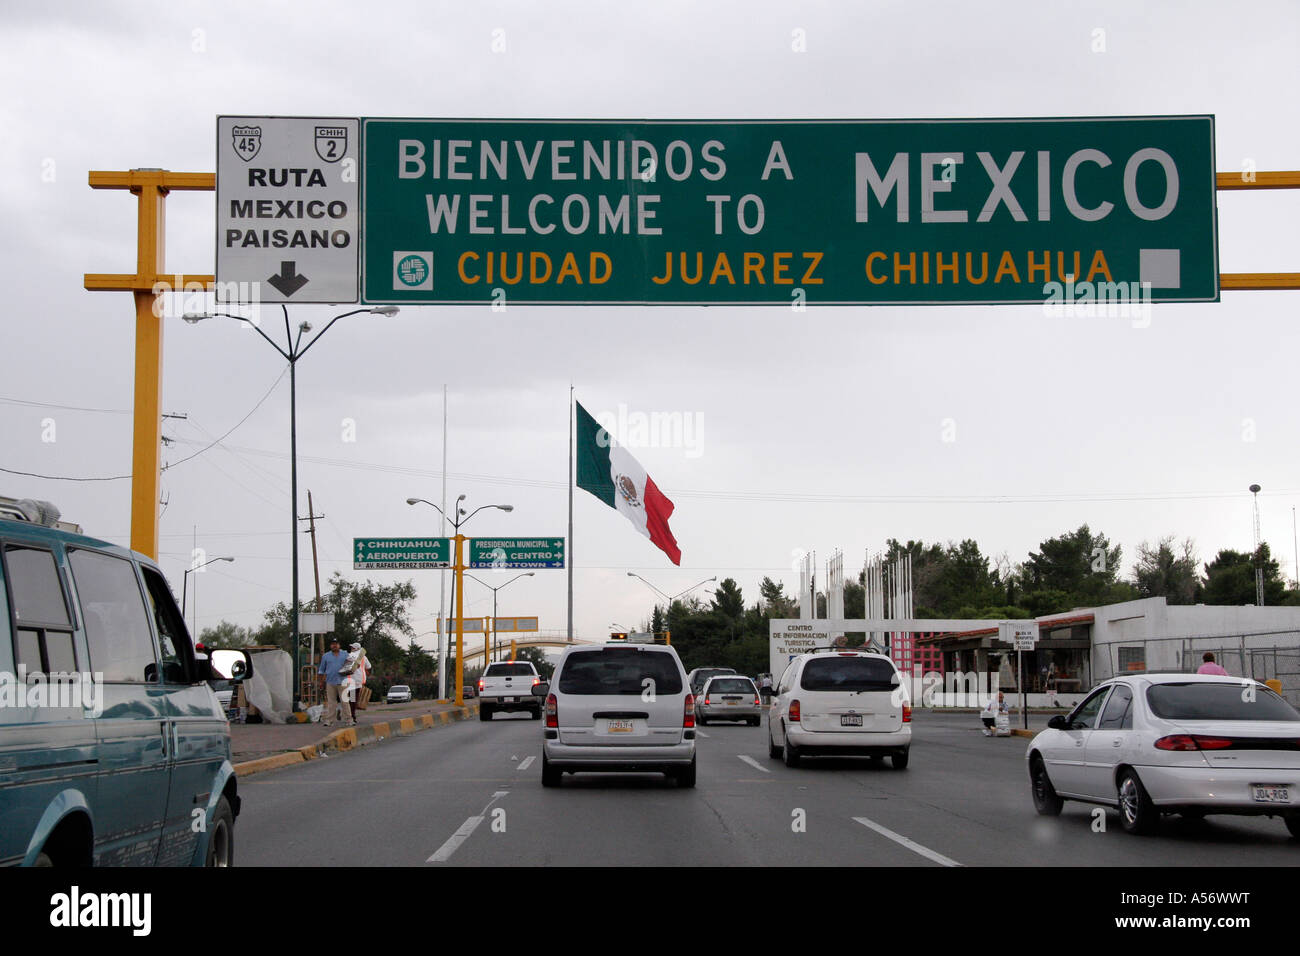 Painet Ja1012 Usa Cars Approaching Mexican Hispanic Immigration